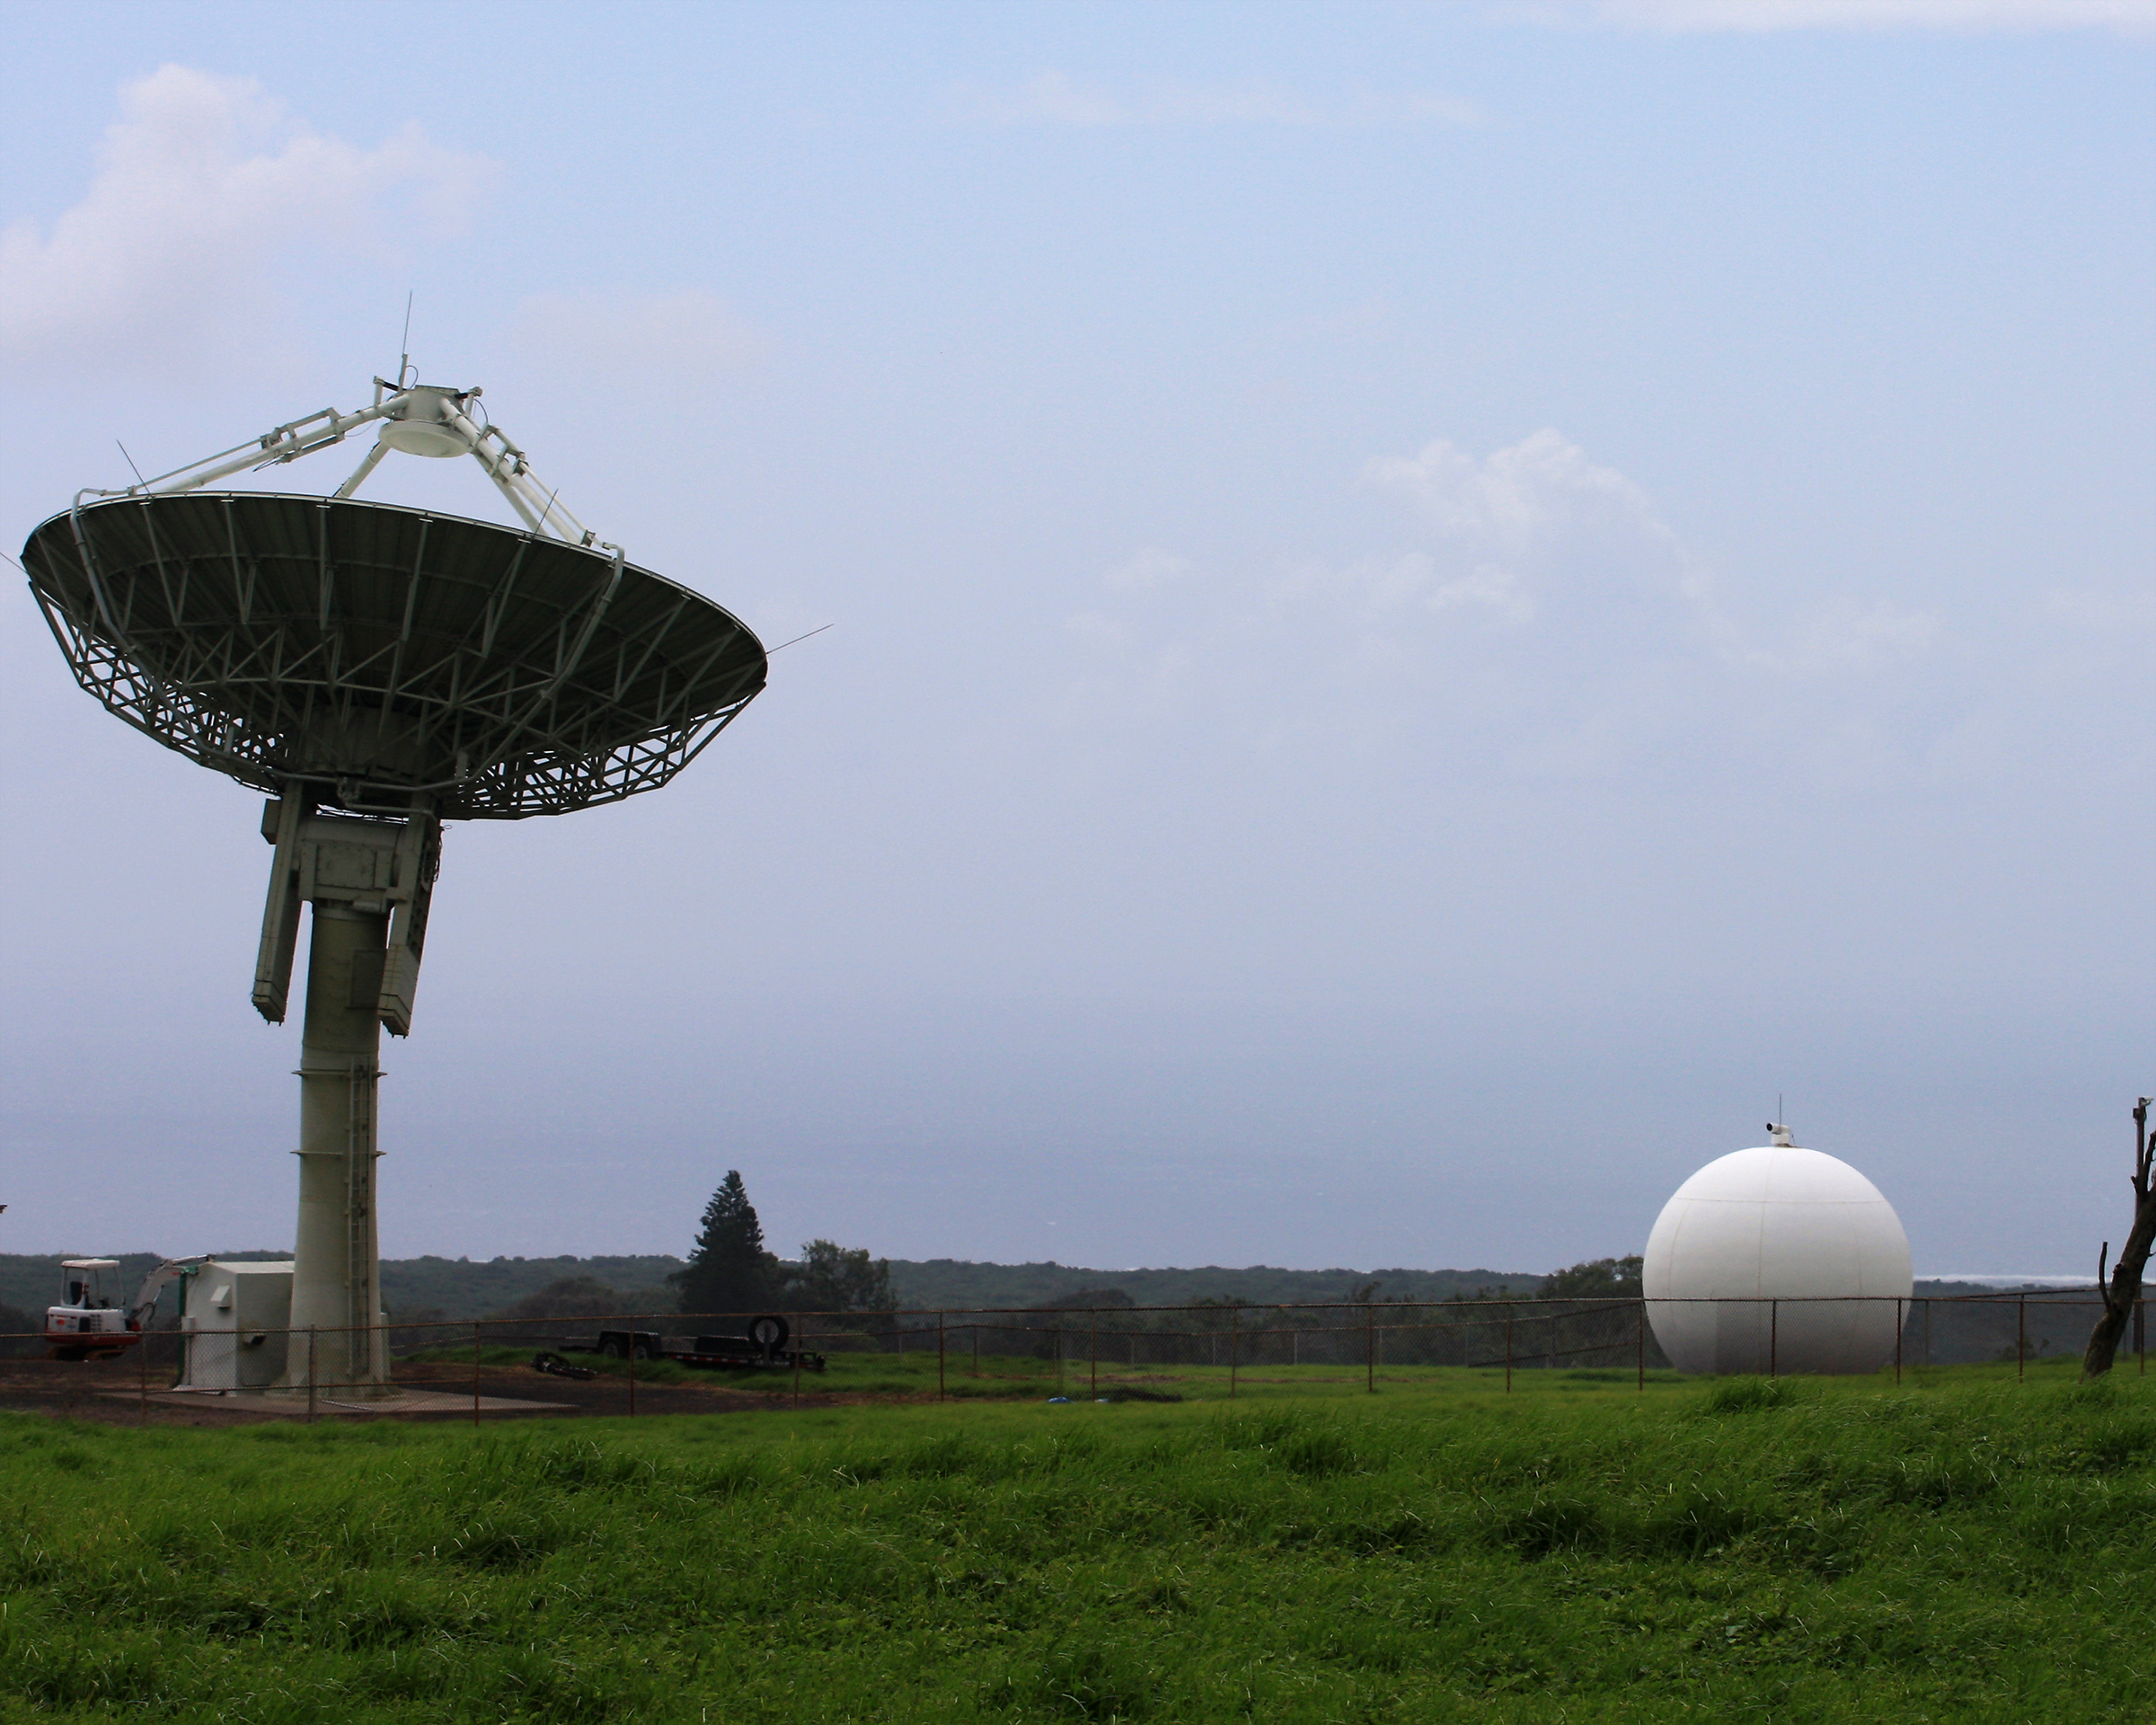 Communications dish, Atmosphere, Radio, Transmission, Telecommunicatio, HQ Photo